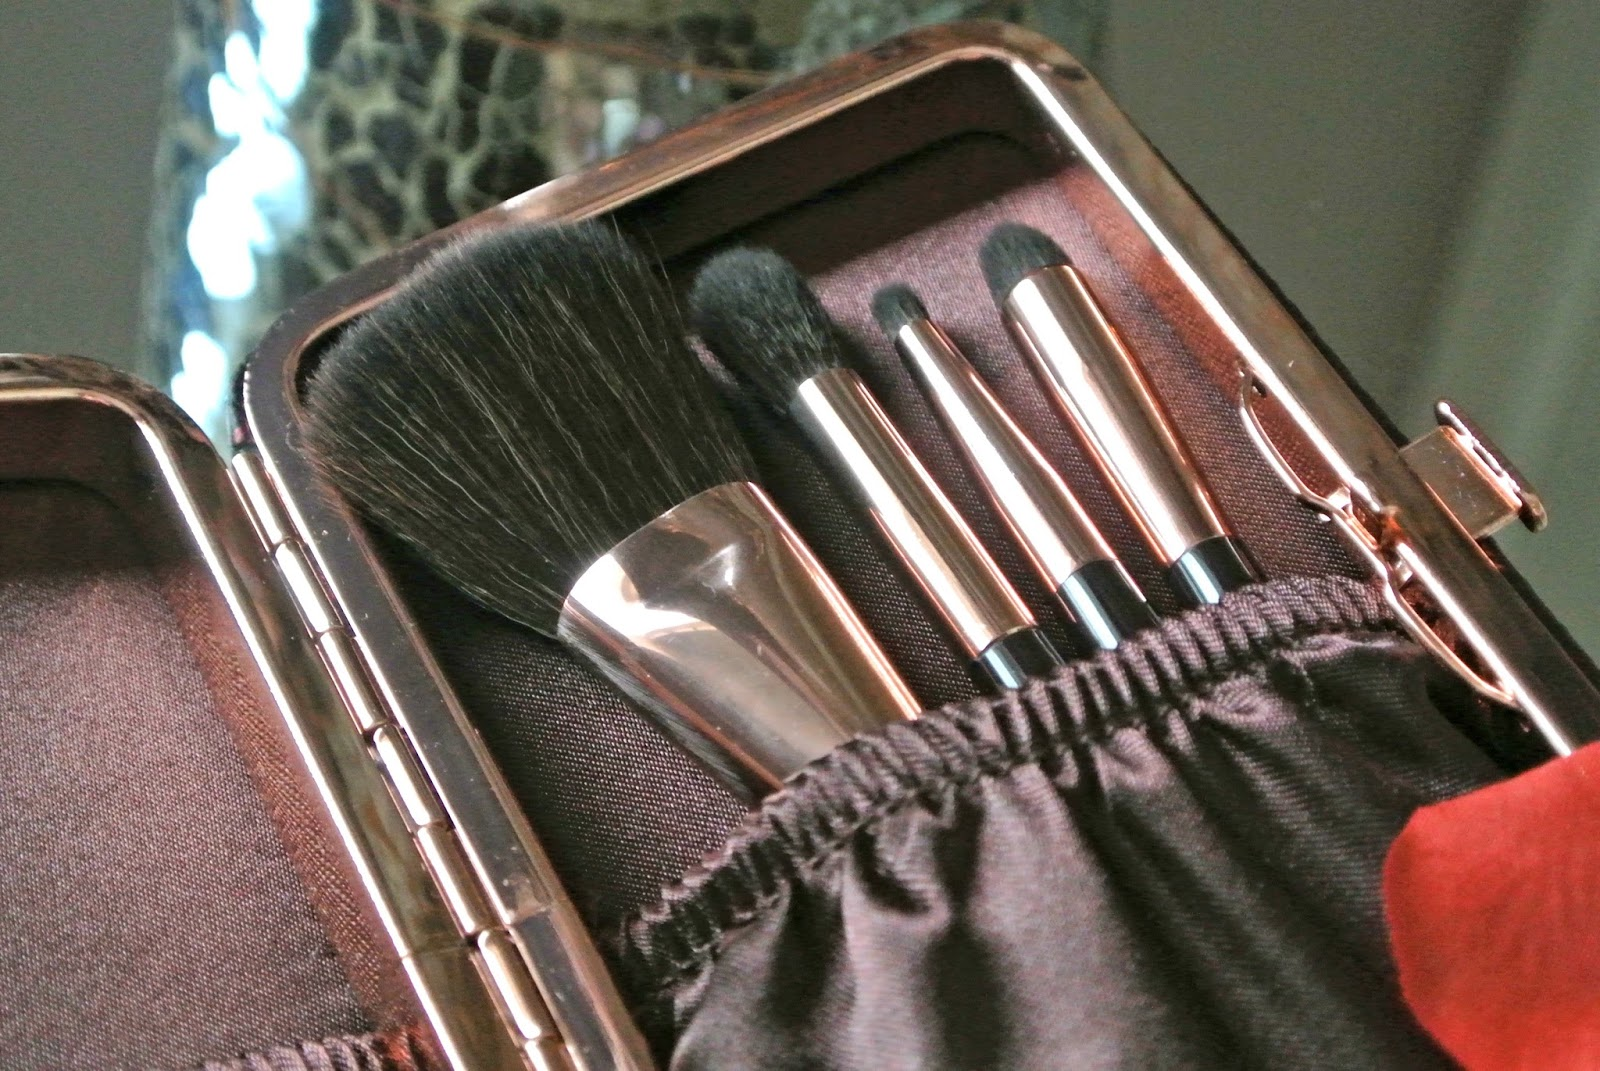 Charlotte Tilbury Gift Magical Mini Makeup Brush Set Image